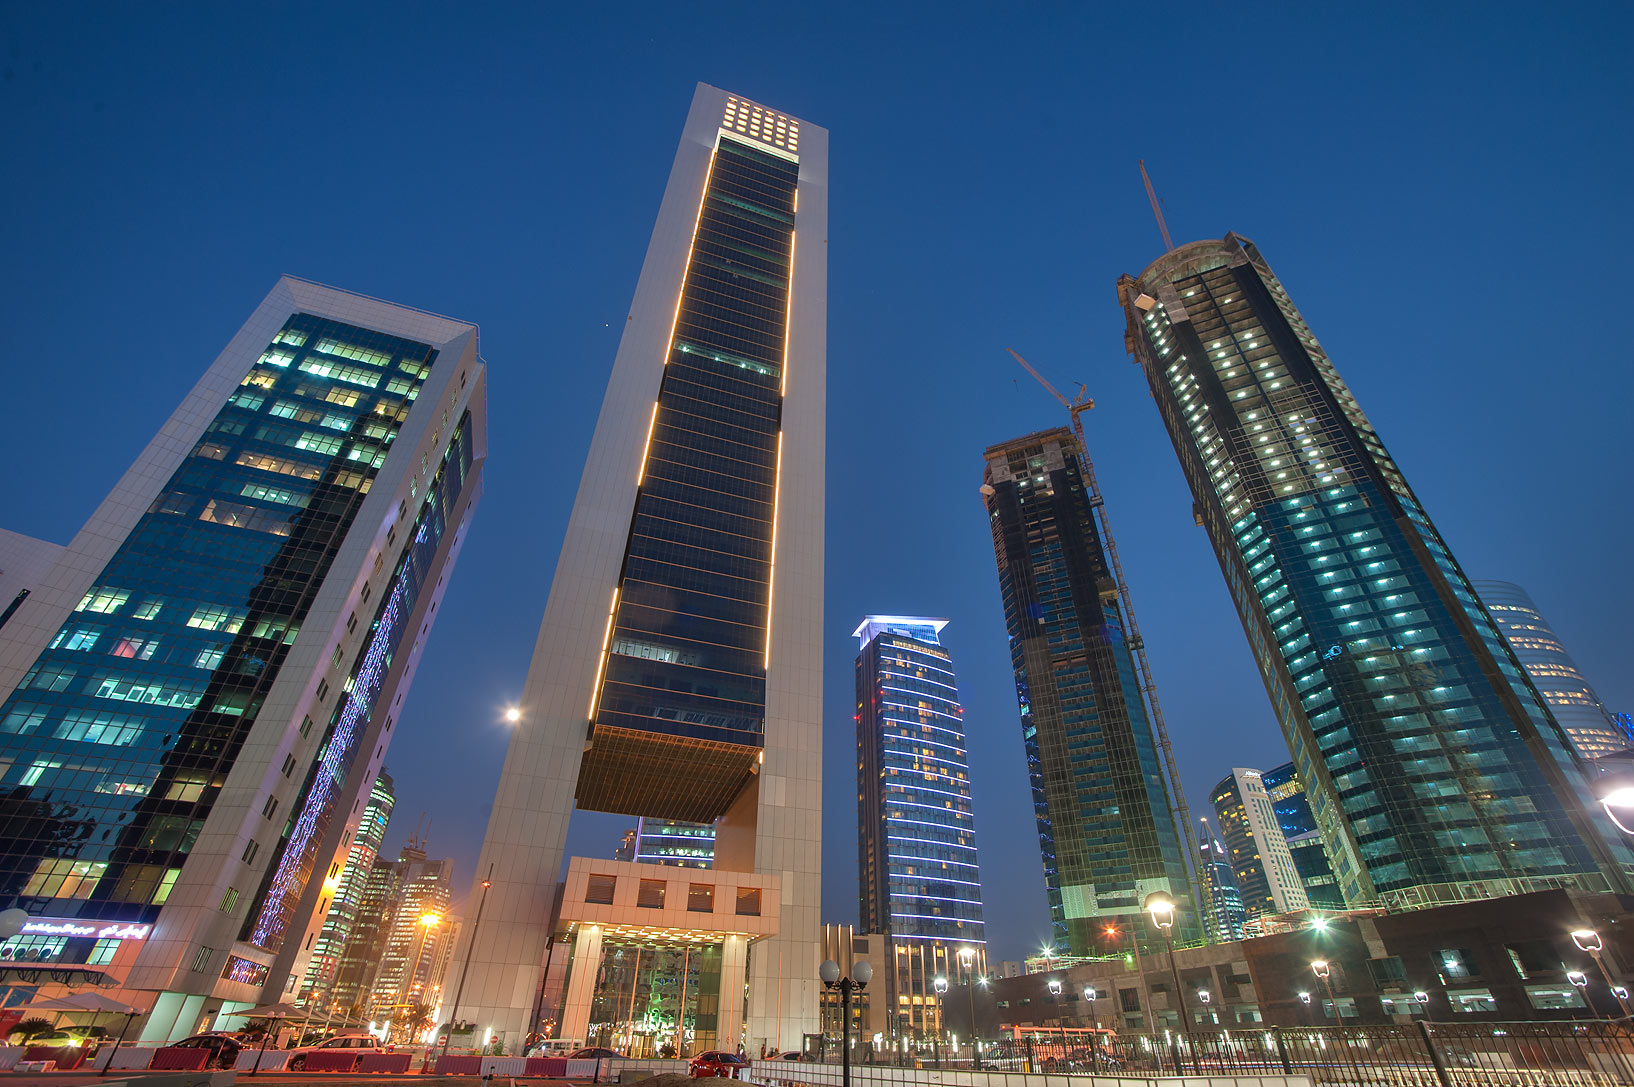 West Bay in Doha-southern Qatar  - Faisal Tower in West Bay. Doha, Qatar